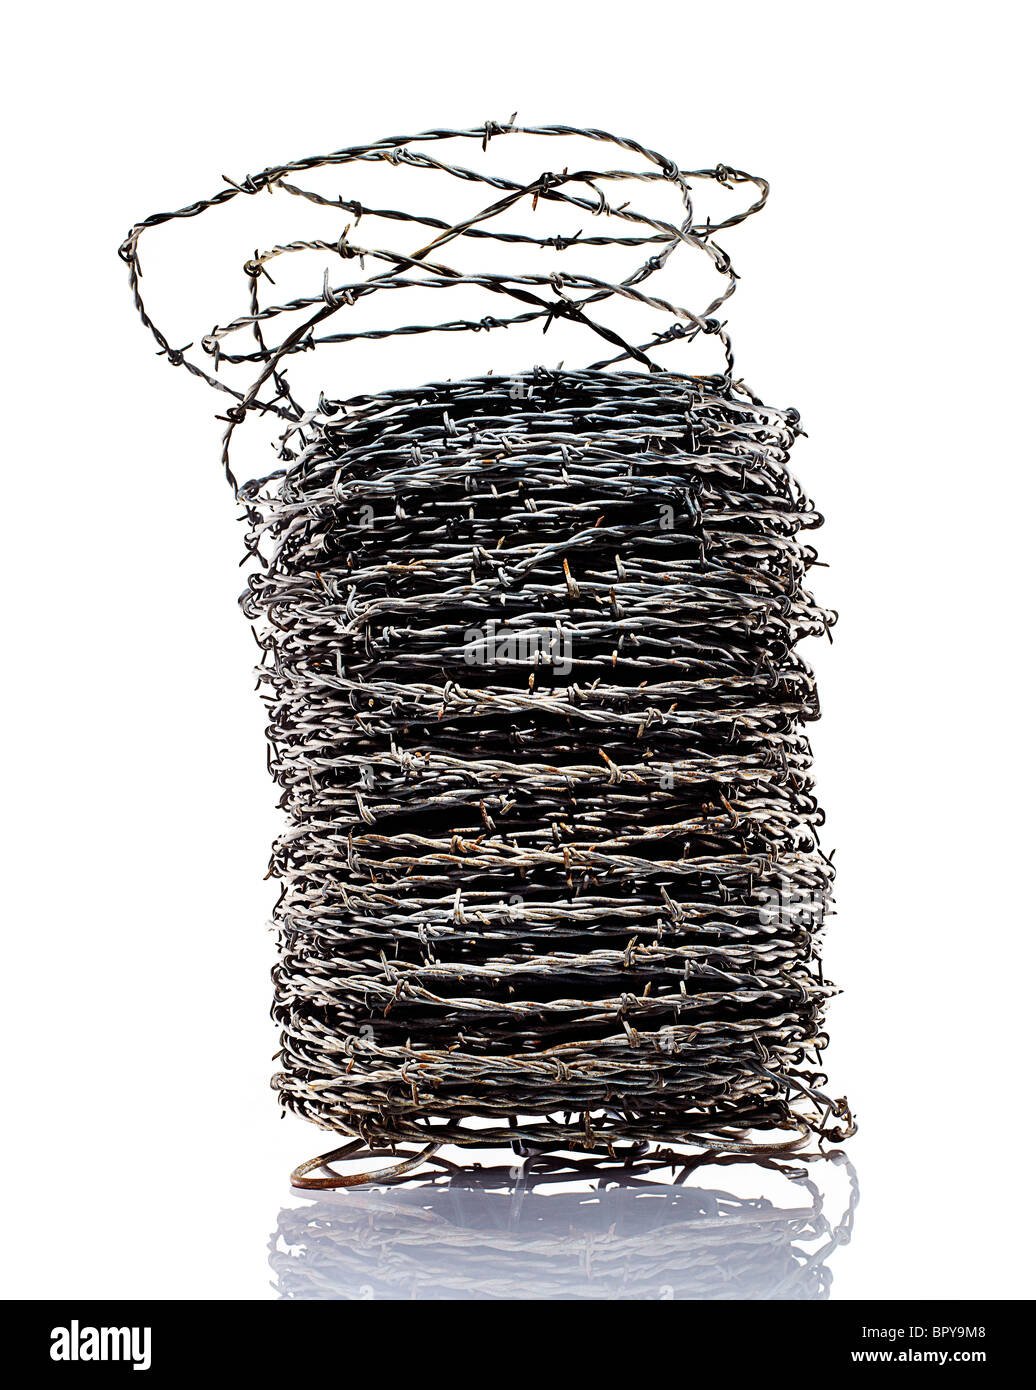 coiled barbed wire on a white background. - Stock Image